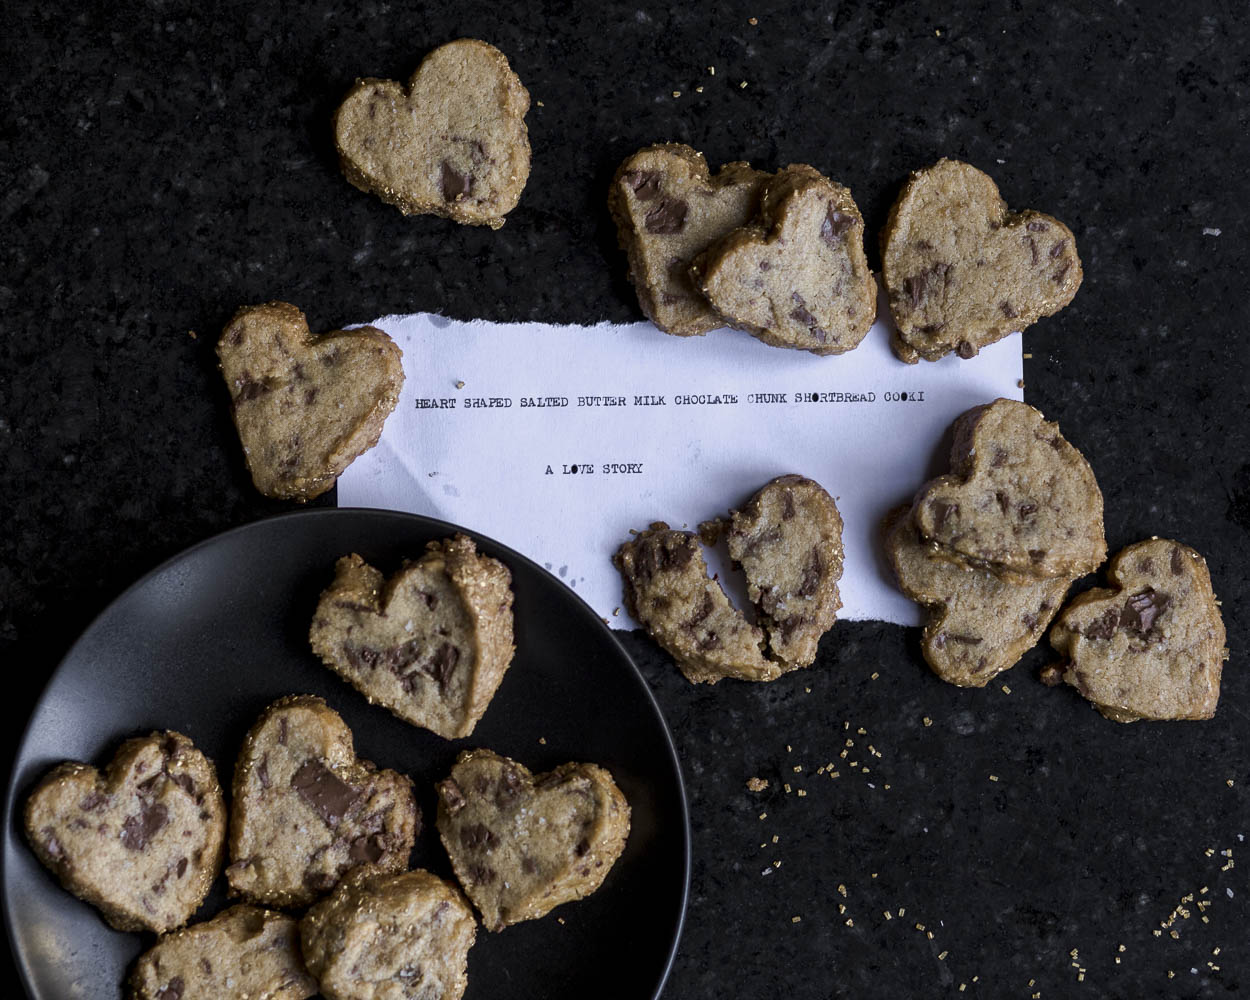 heart shaped, salted butter, milk chocolate chunk, shortbread cookies